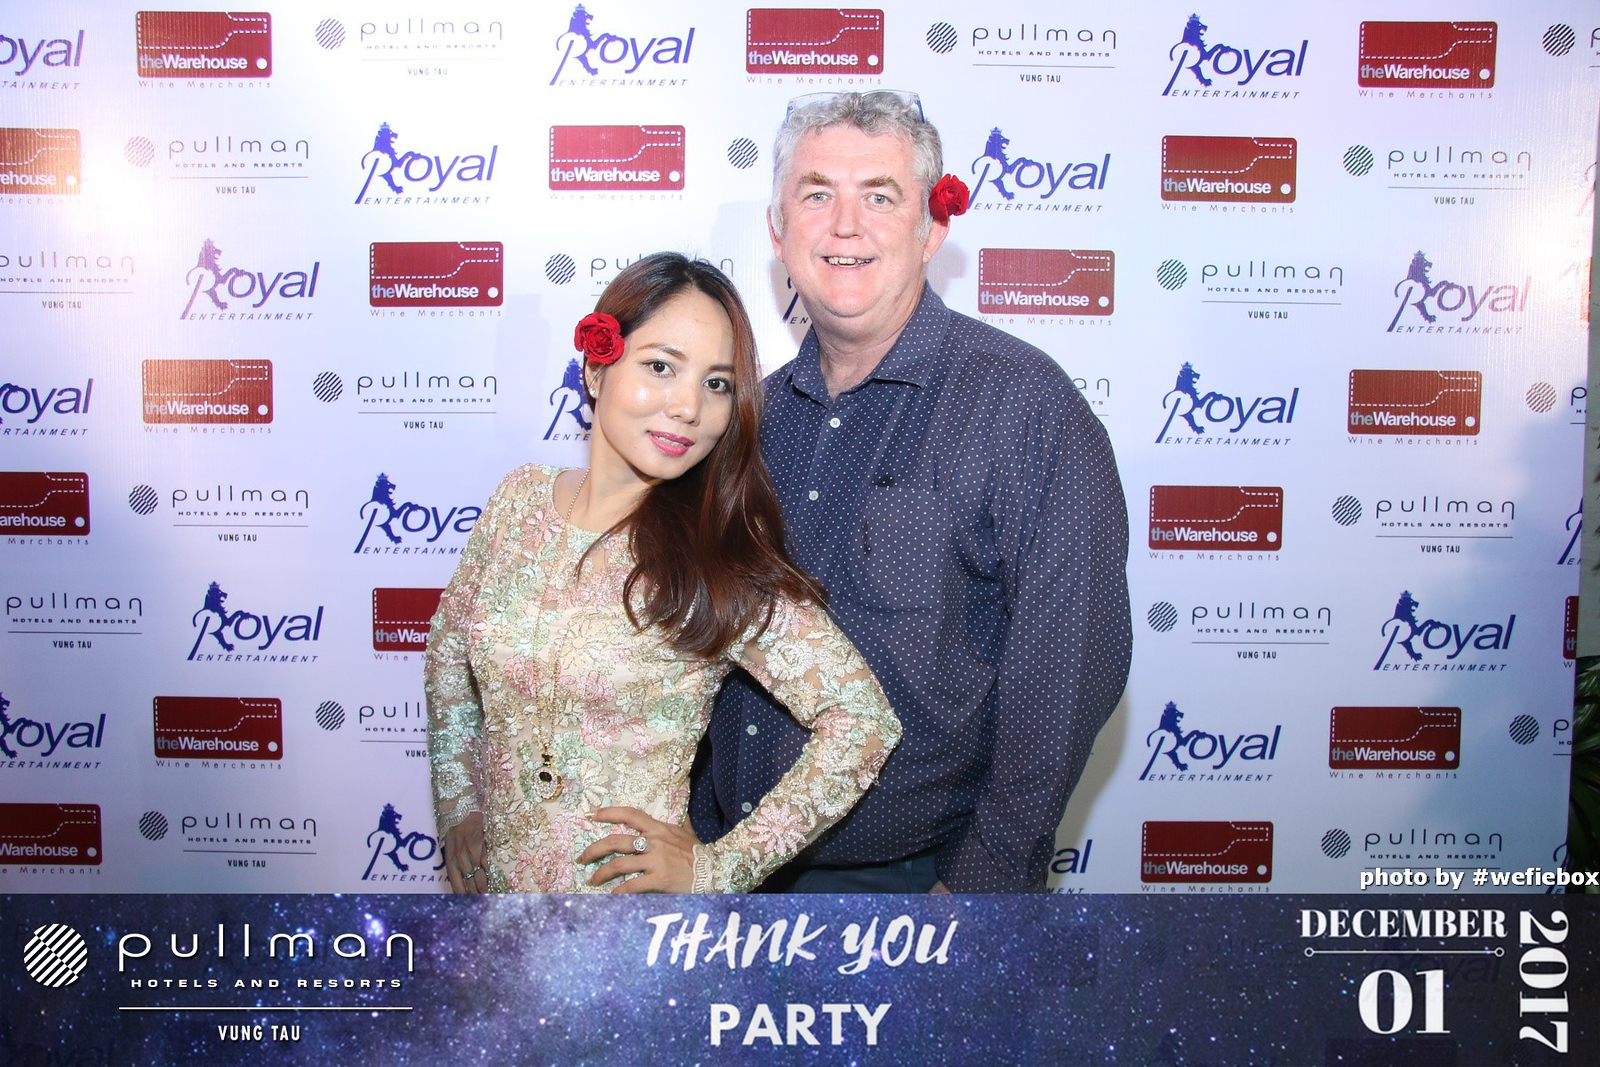 Pullman-Vung-Tau-Thank-You-Party-2017-photobooth-instant-print-chup-anh-lay-lien-su-kien-tiec-cuoi-062